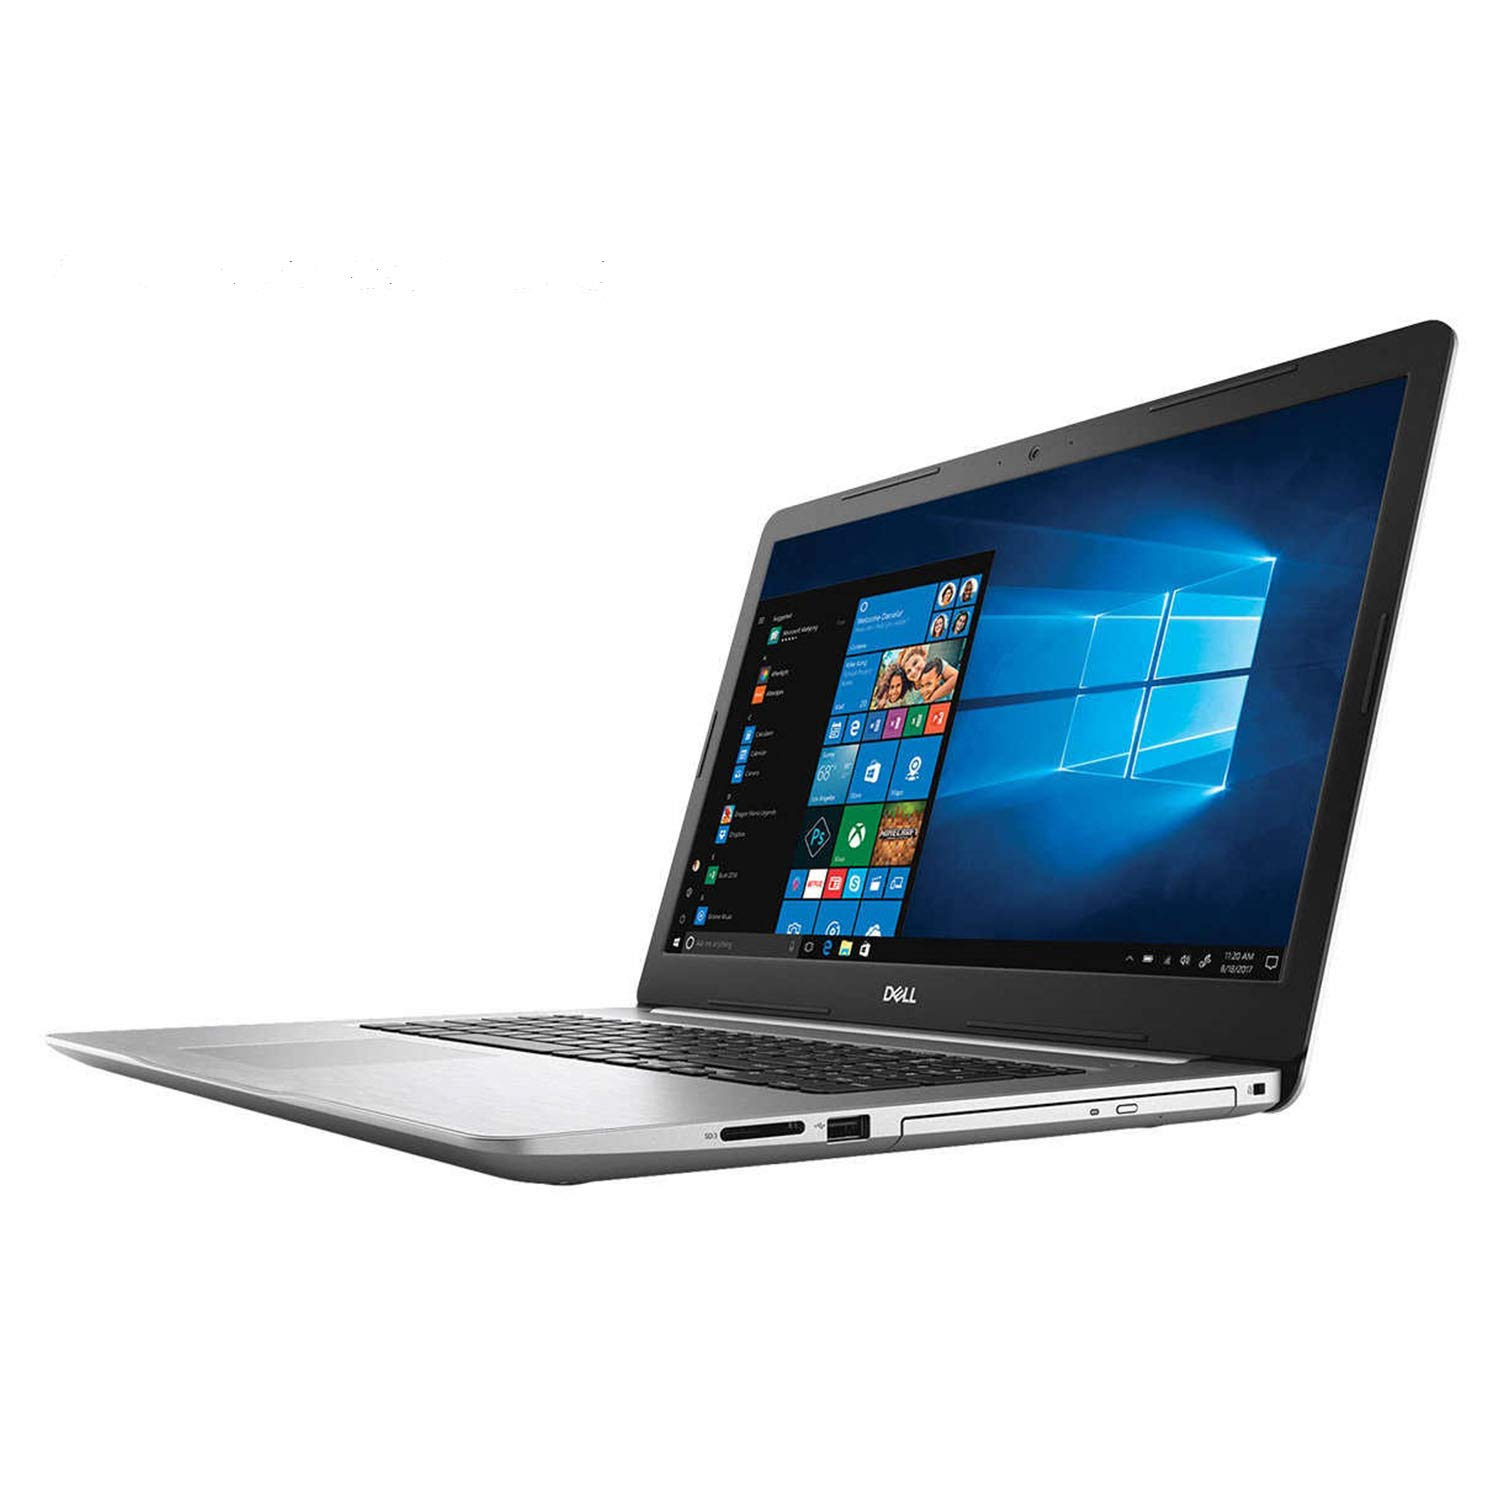 【残りわずか】 Dell RAM, Inspiron 17 Premium School and Business Laptop x 8th (Intel 8th Gen i7-8550U Quad-Core, 16GB RAM, 1TB HDD + 512GB PCIe SSD, 17.3